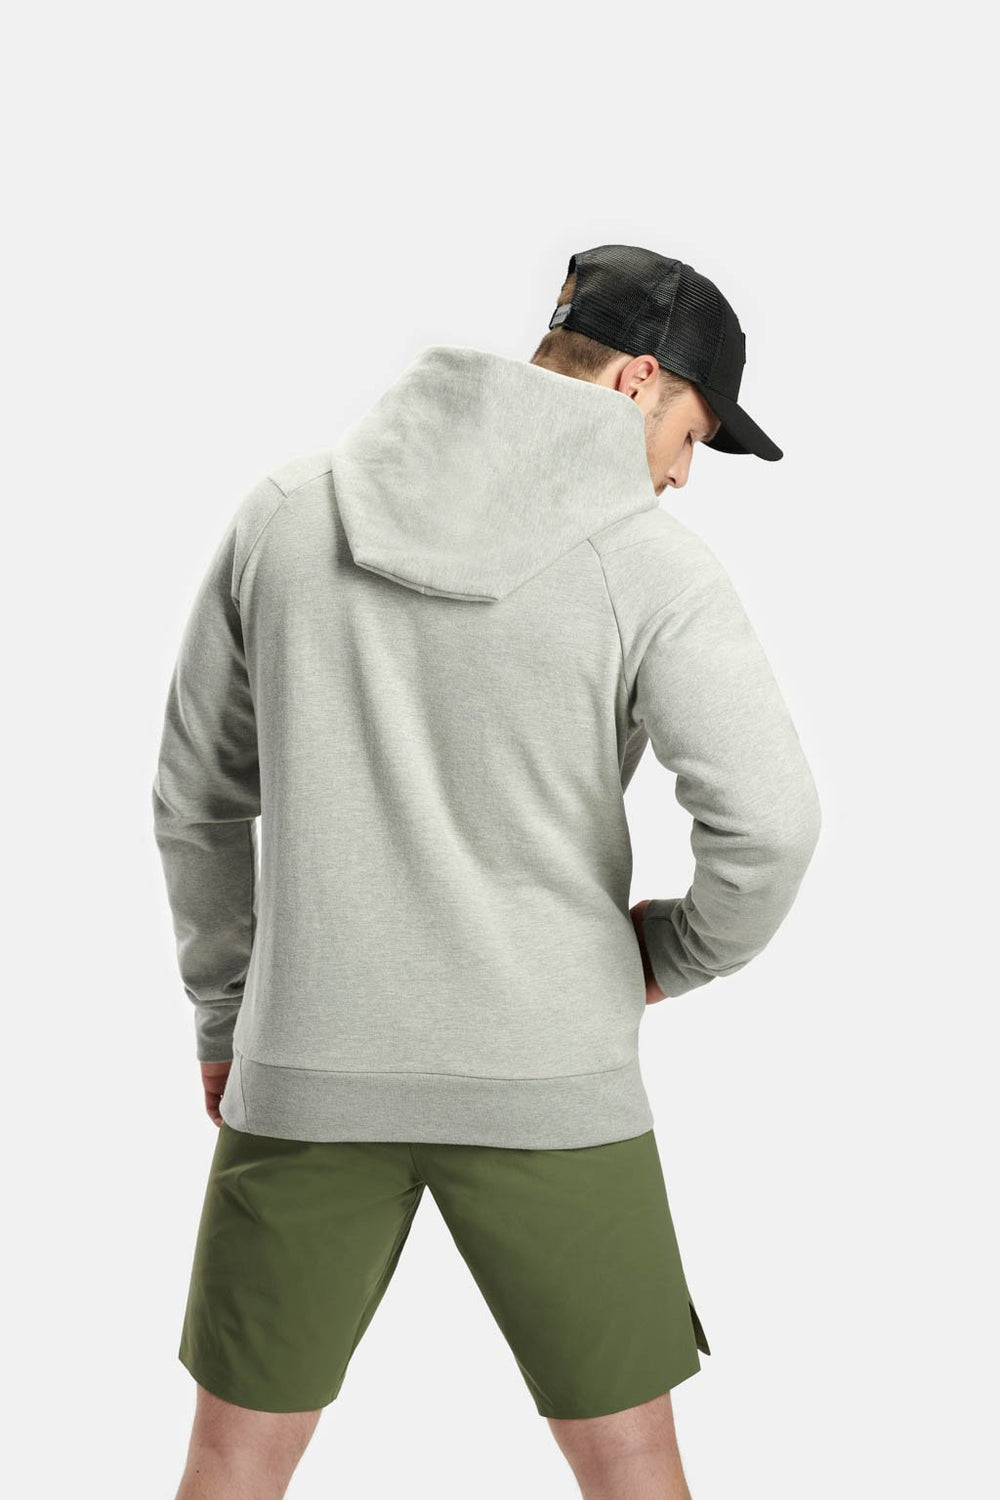 RYU Mens Core Hoodie in Heather Athletic Grey